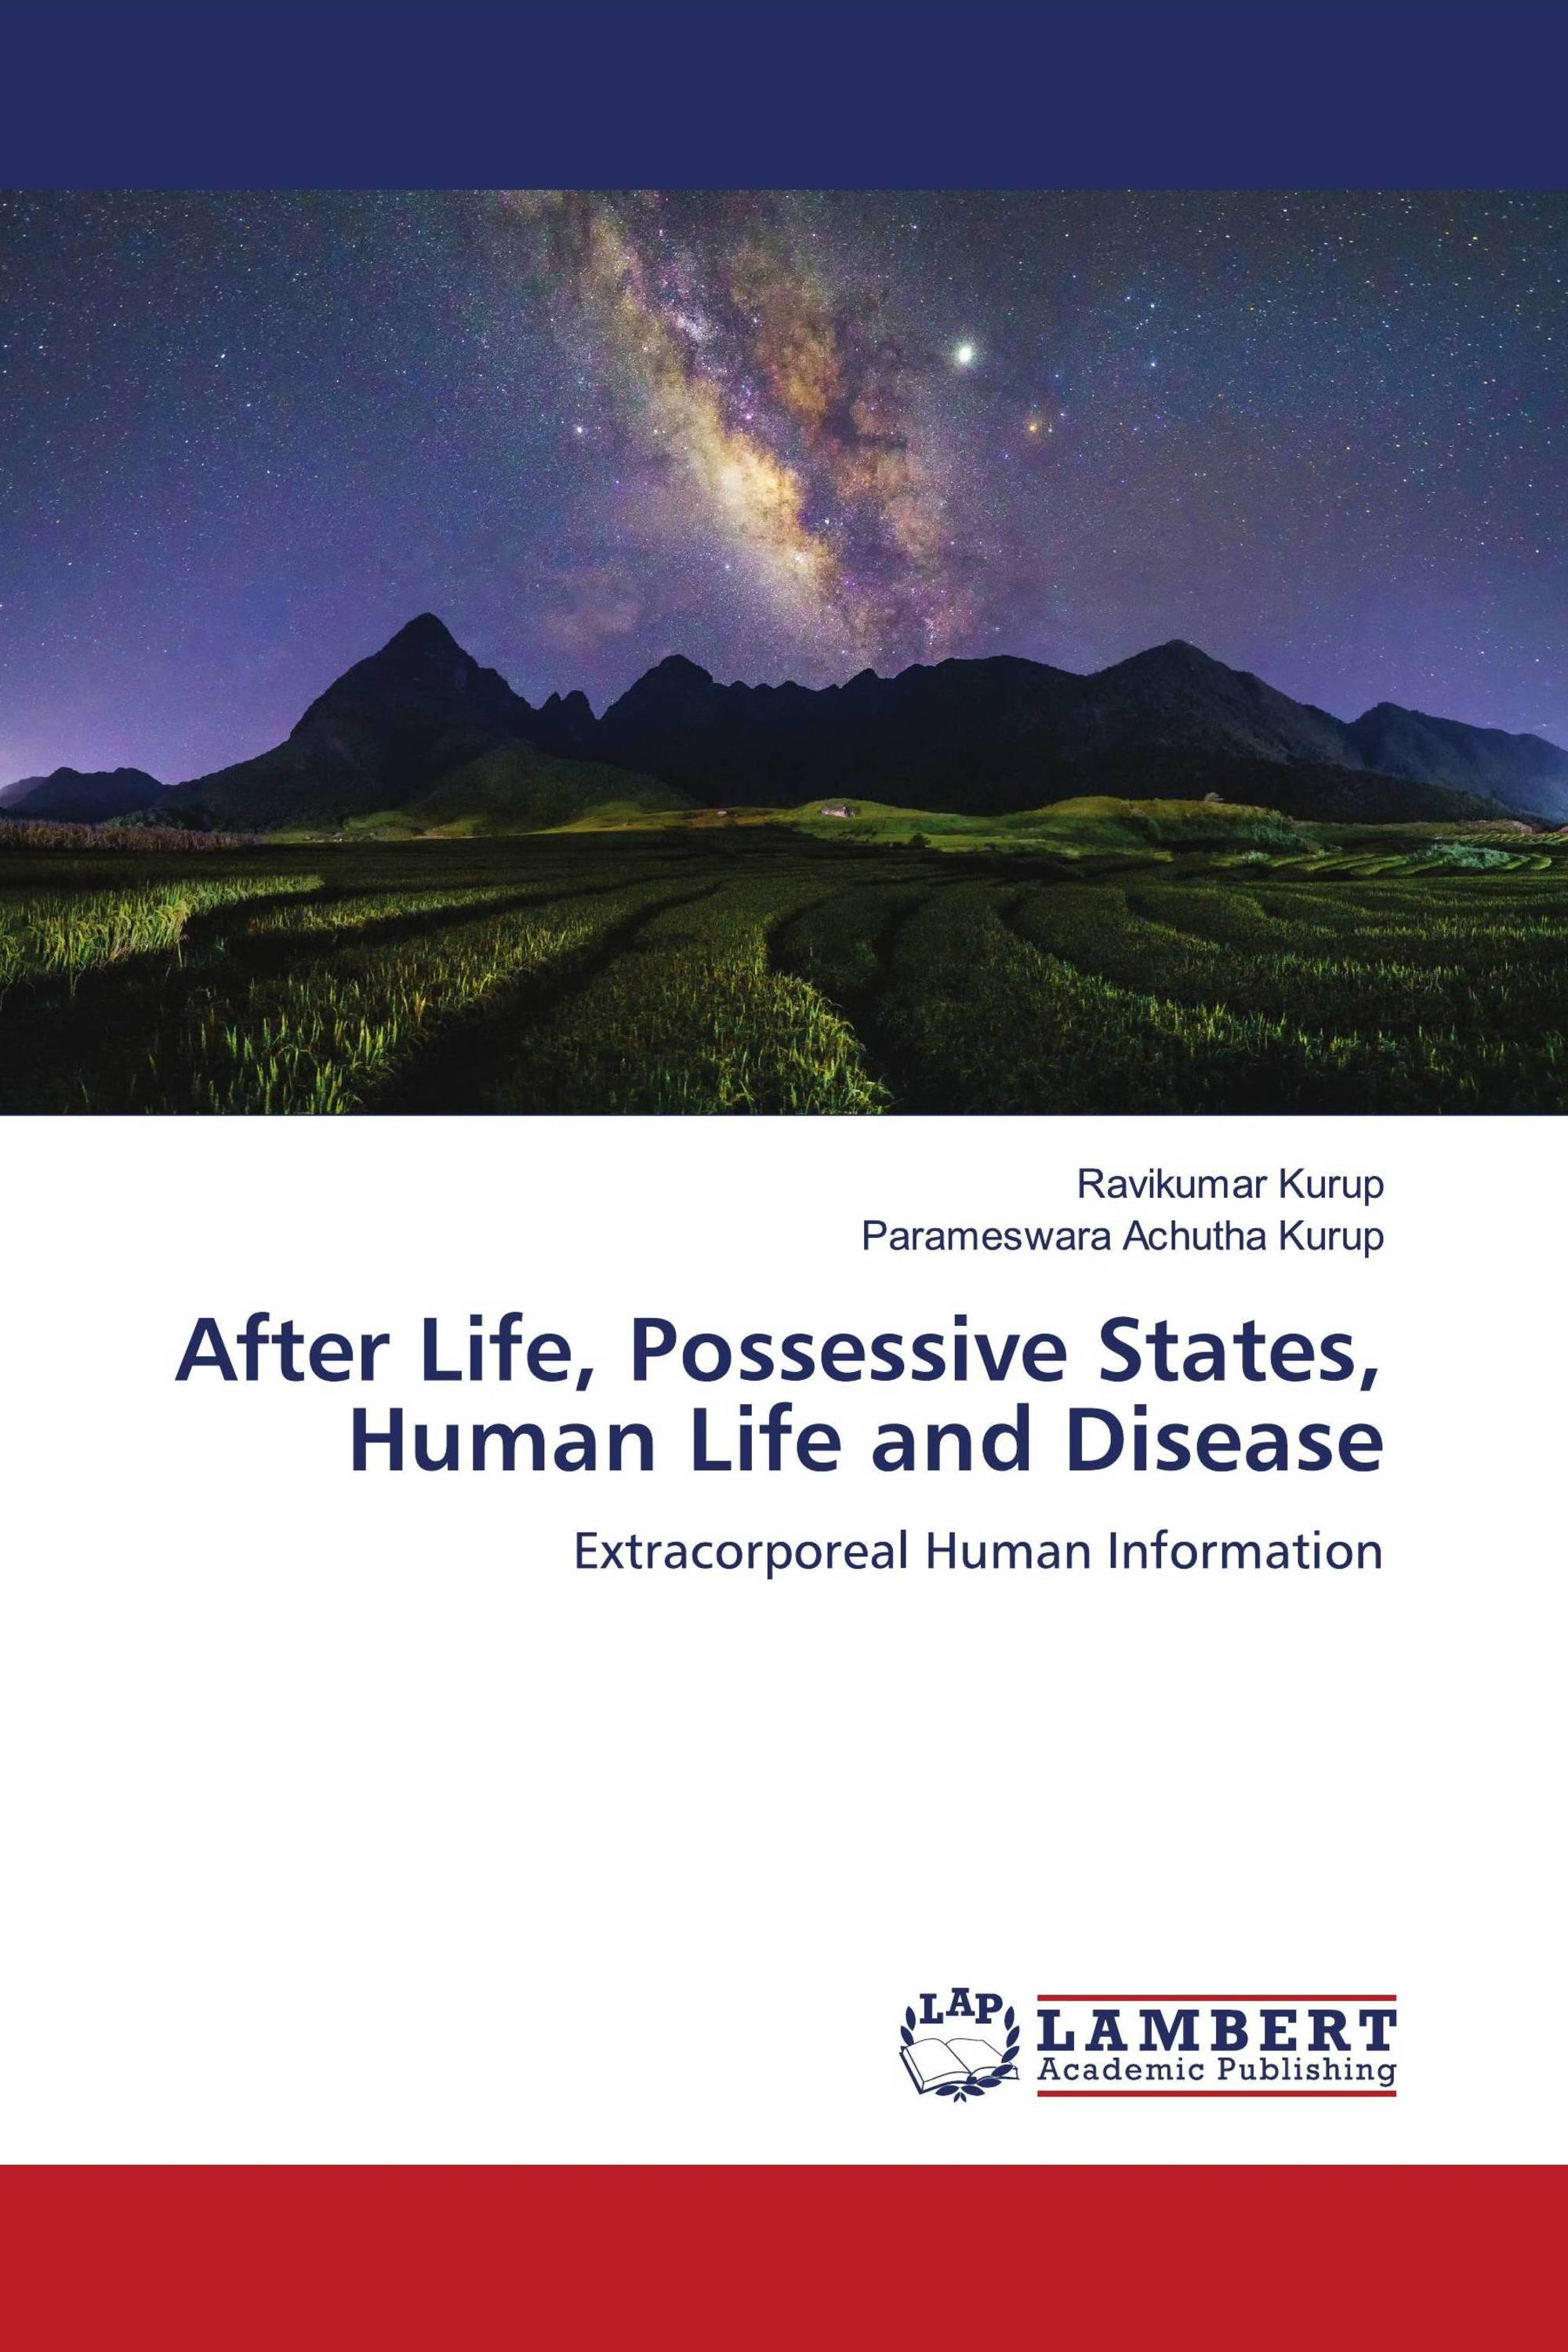 After Life, Possessive States, Human Life and Disease